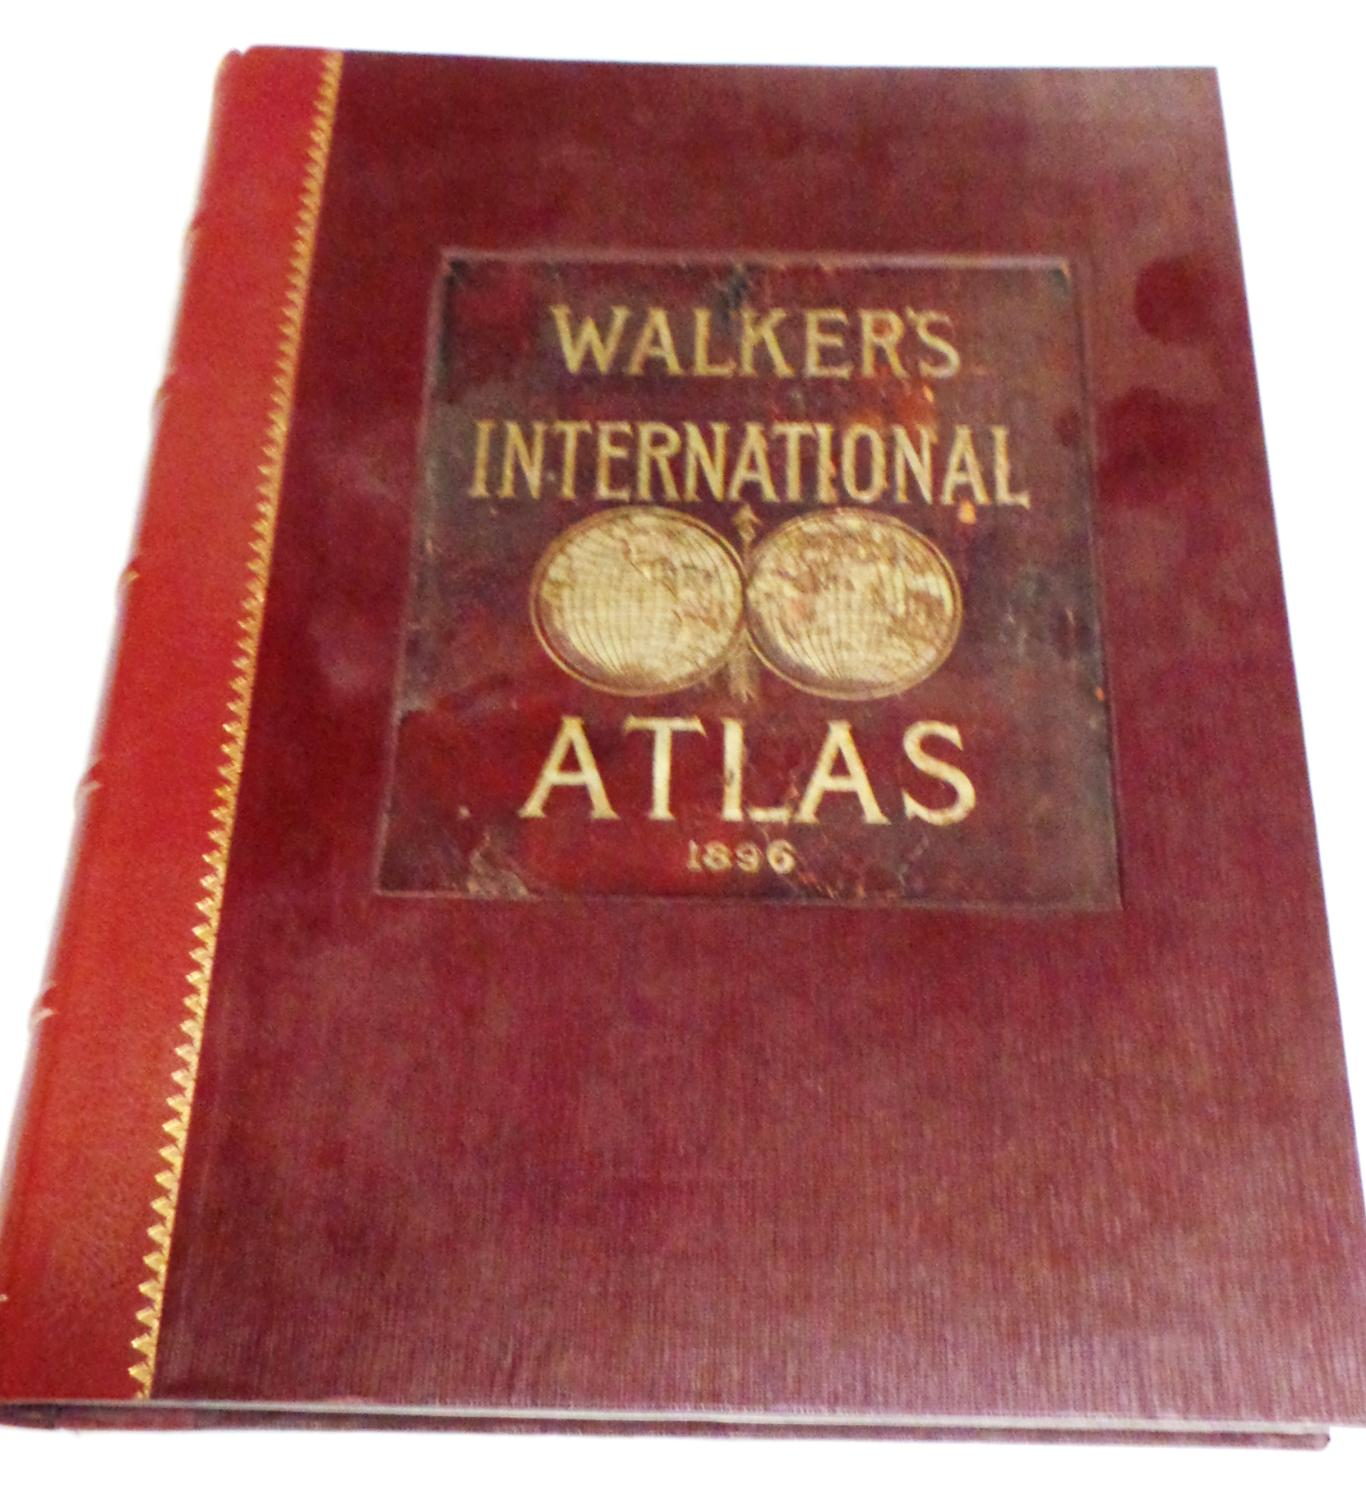 Walker's International Atlas Containing Over Two Hundred New Maps, Showing the Geographical ...